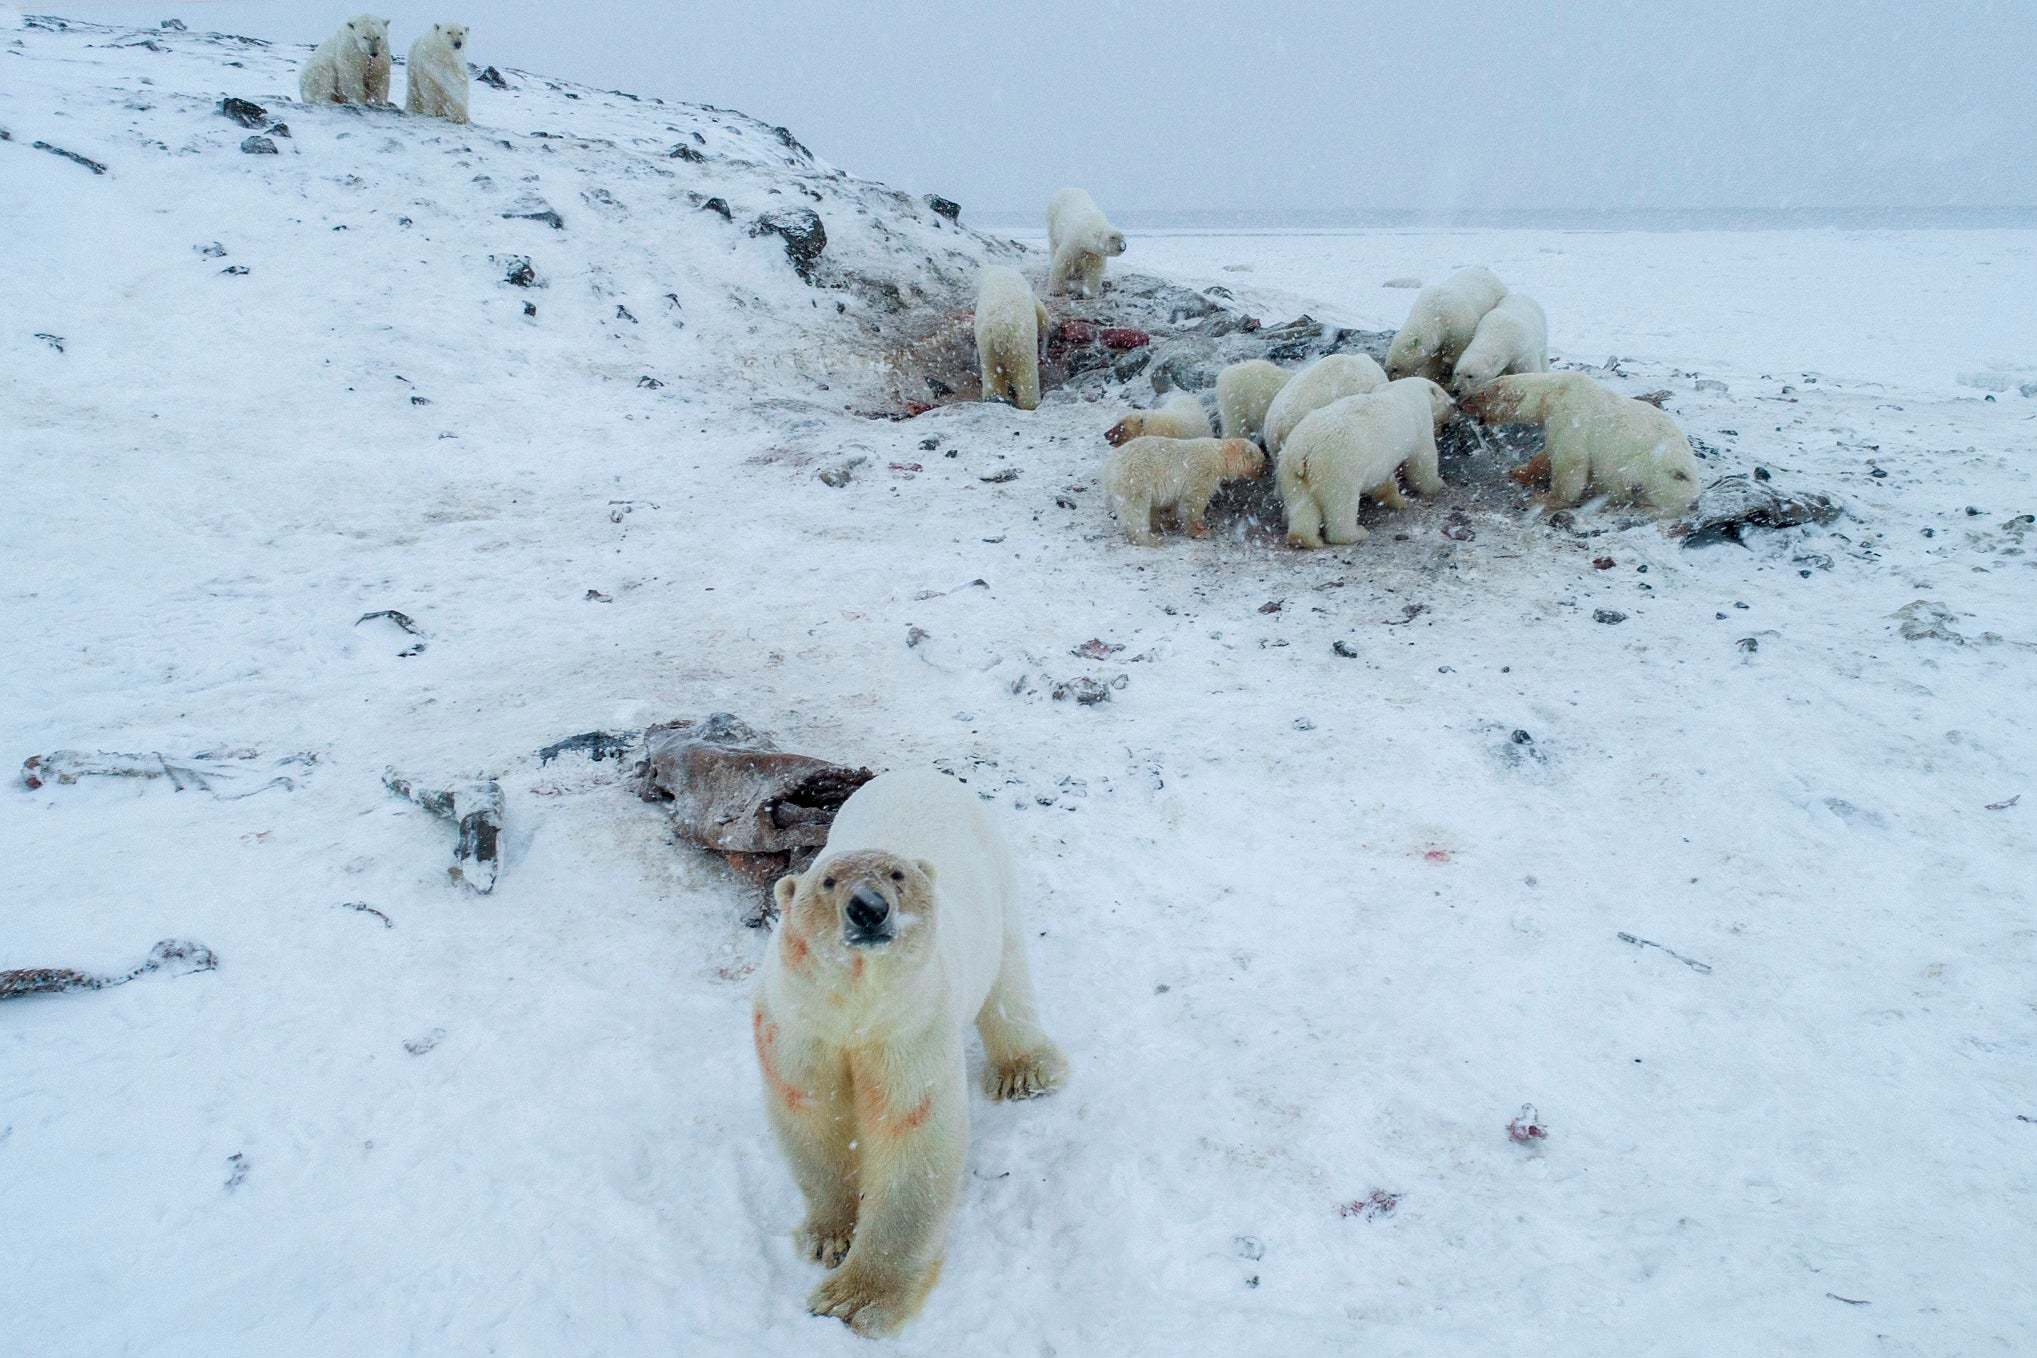 Hungry polar bears invade Russian town for food because no longer enough ice for them to travel further north to hunt thumbnail